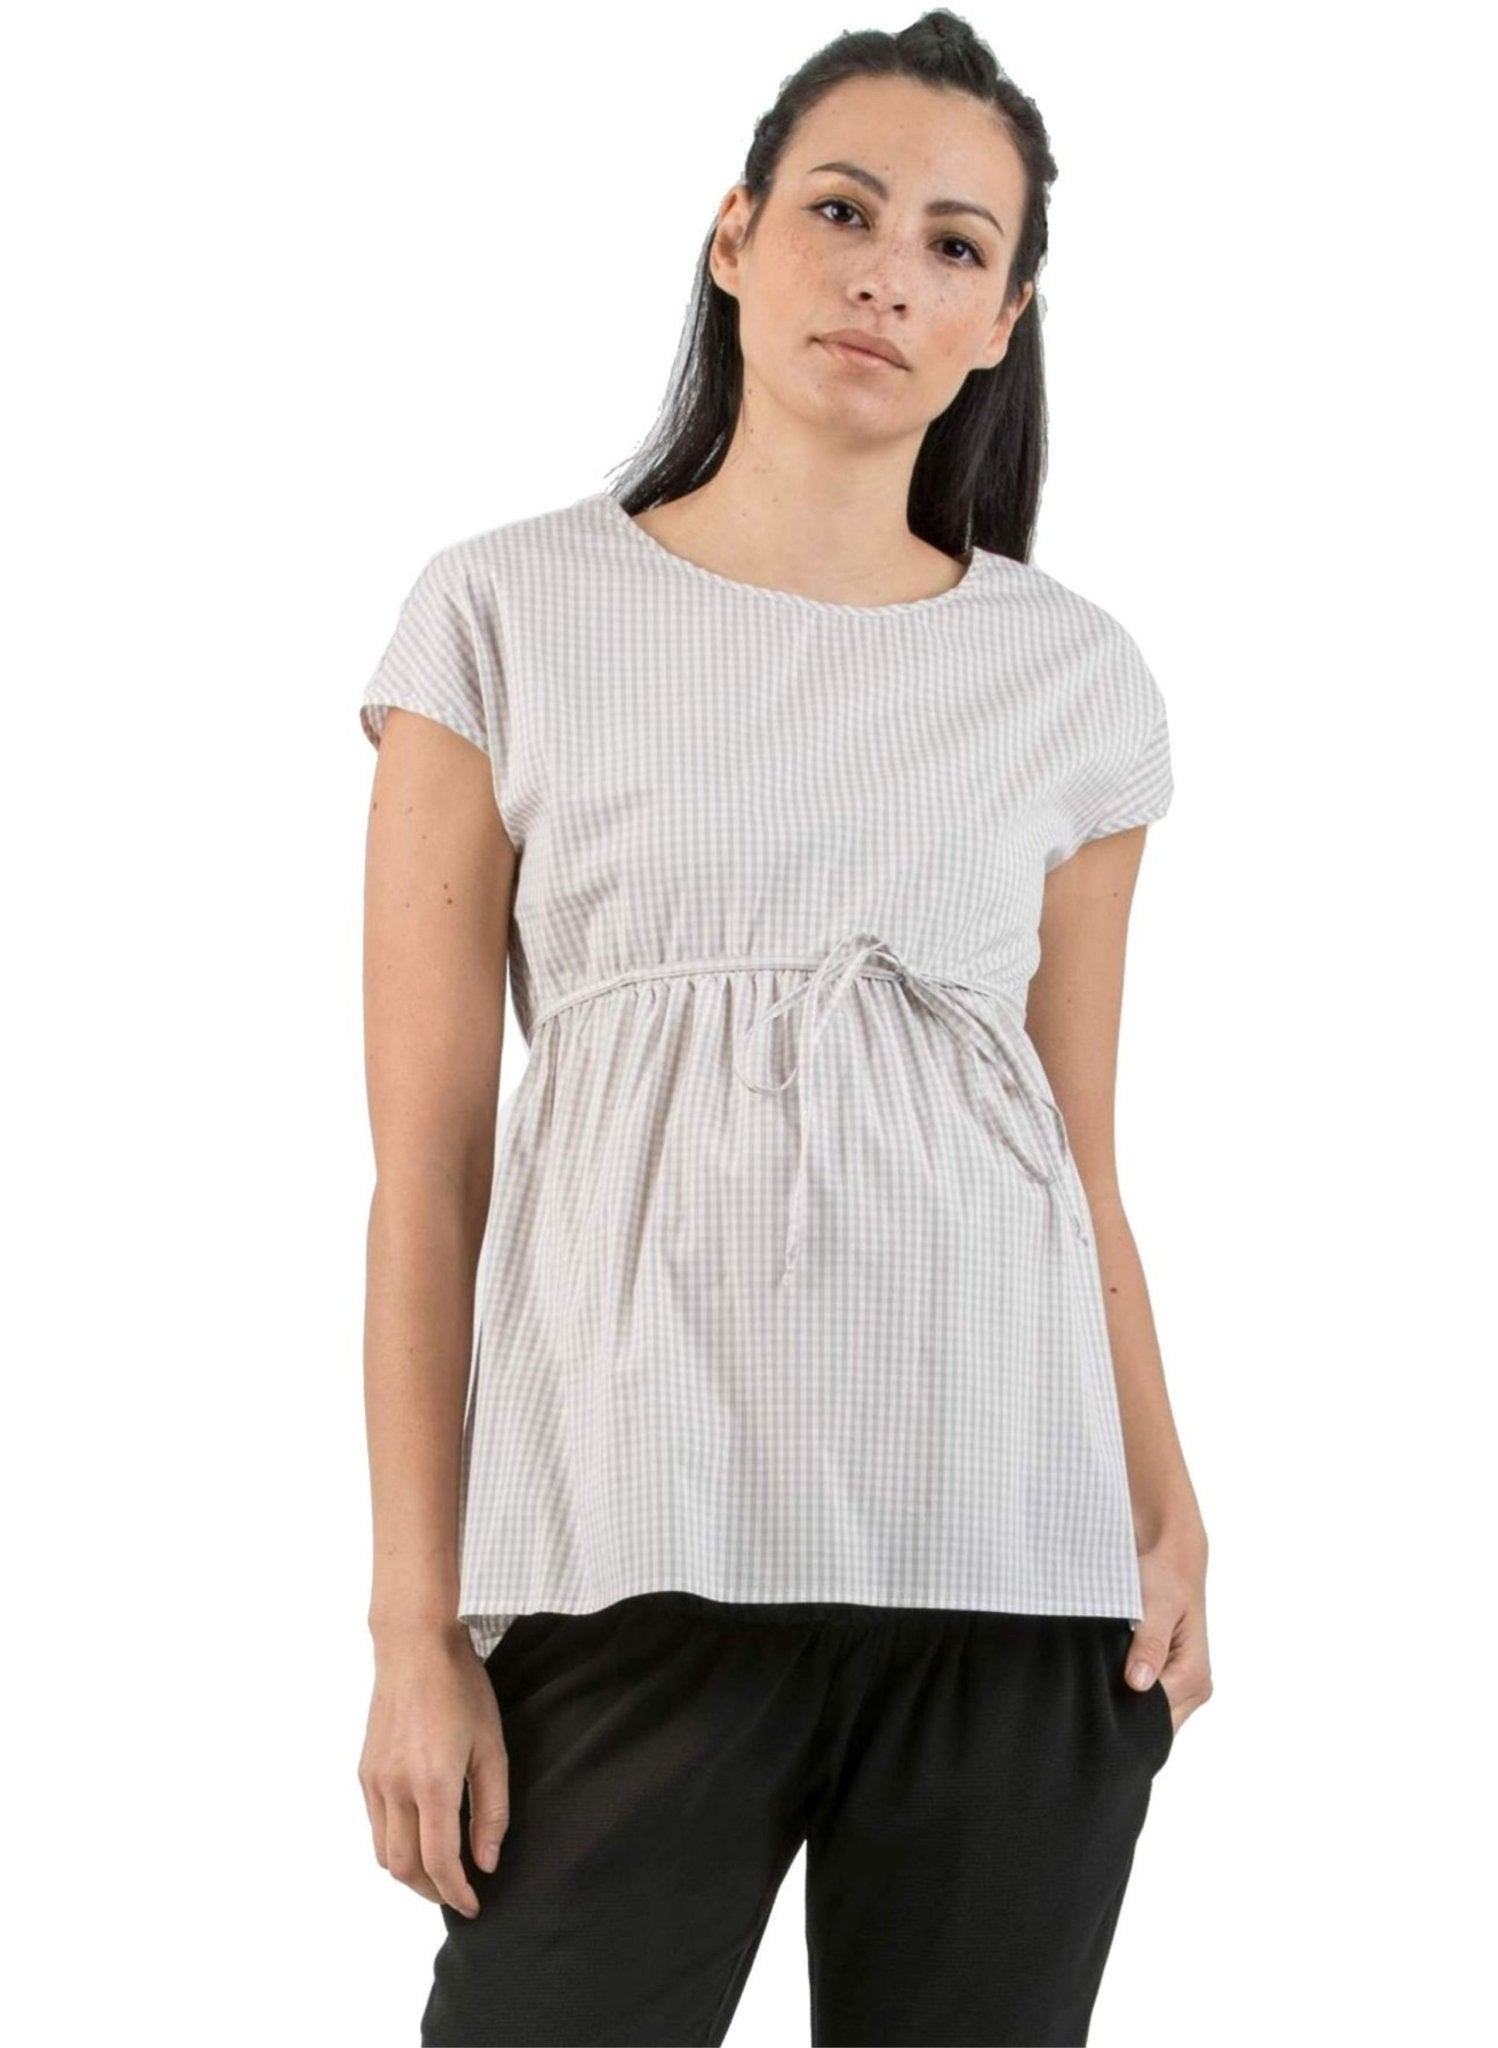 Cotton Maternity Top with Side String - Beige - Mums and Bumps